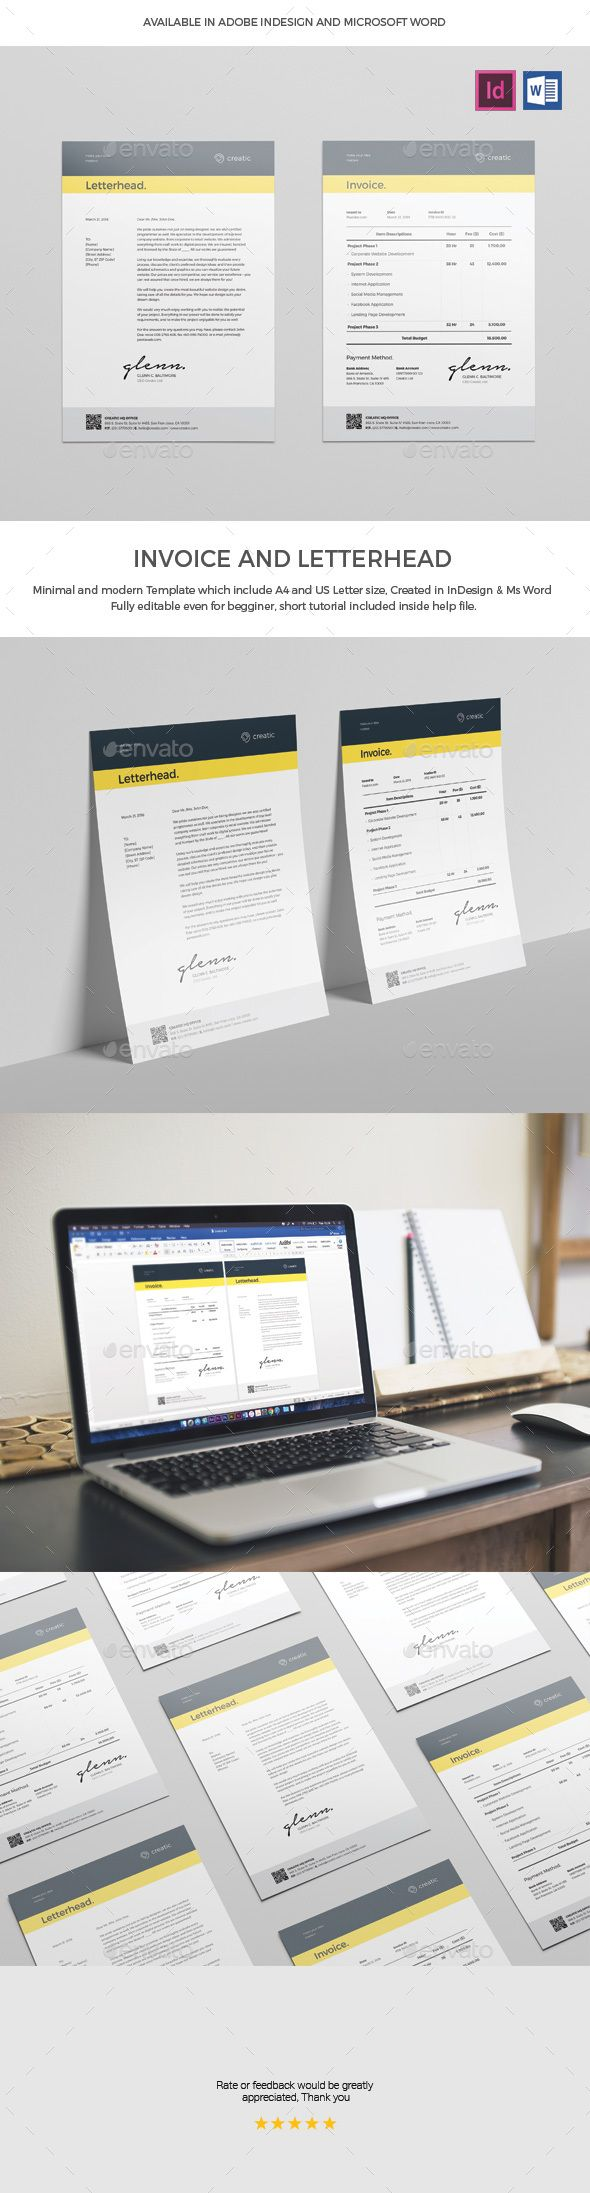 how to create a proposal template in word%0A  Invoice  Proposals  u     Invoices Stationery Download here   https   graphicriver